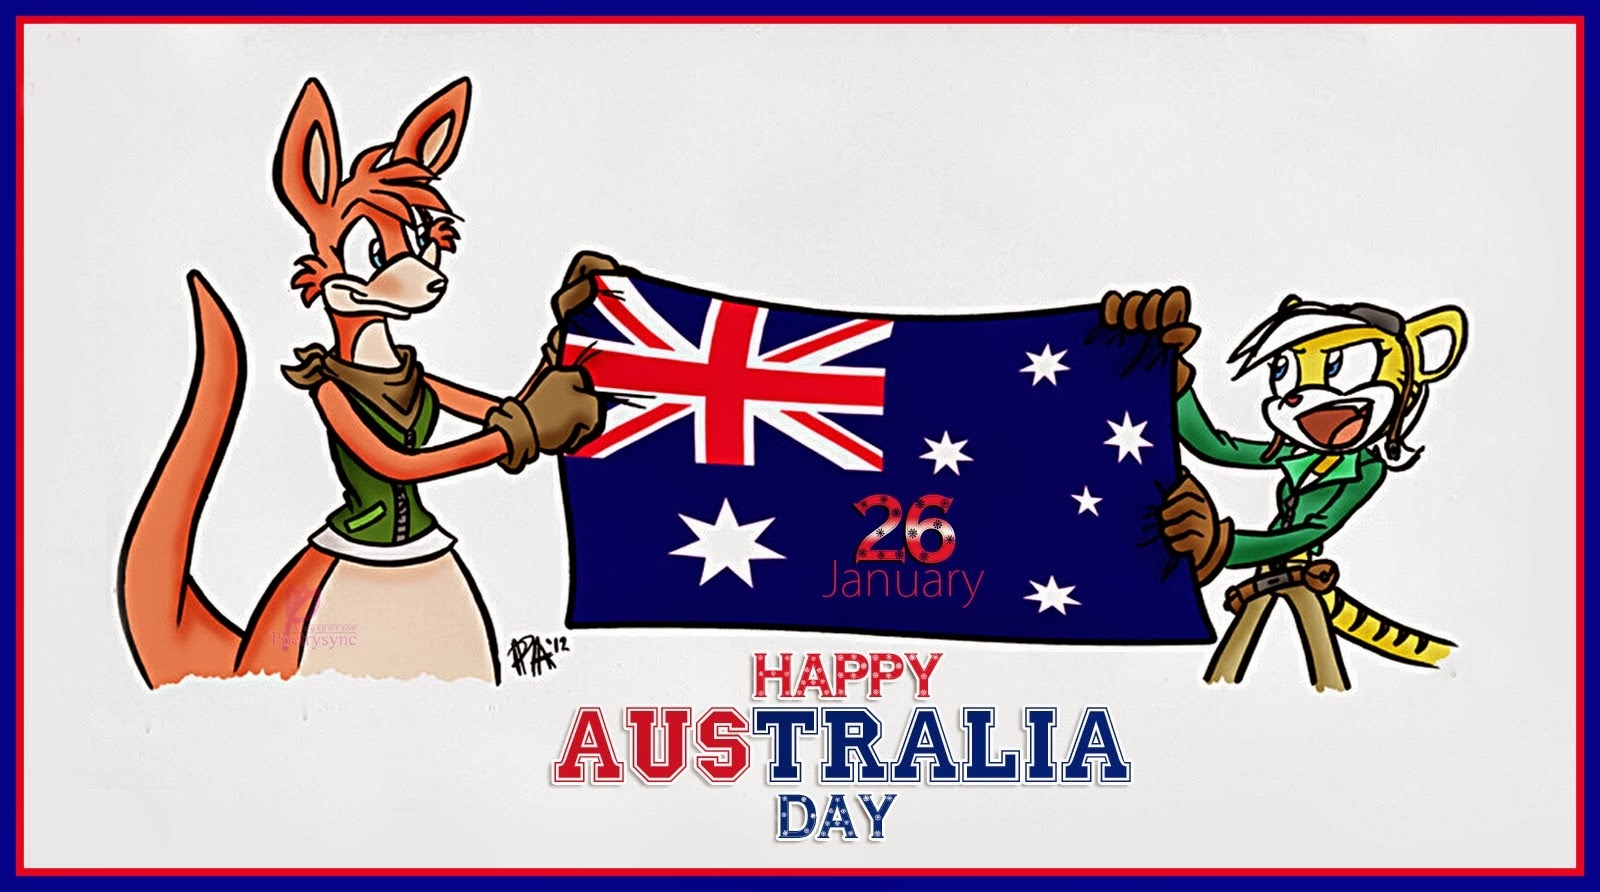 Happy australia day wishes quotes sms messages sayings 2018 australia day wallpaper 20172b2528162529 kristyandbryce Image collections